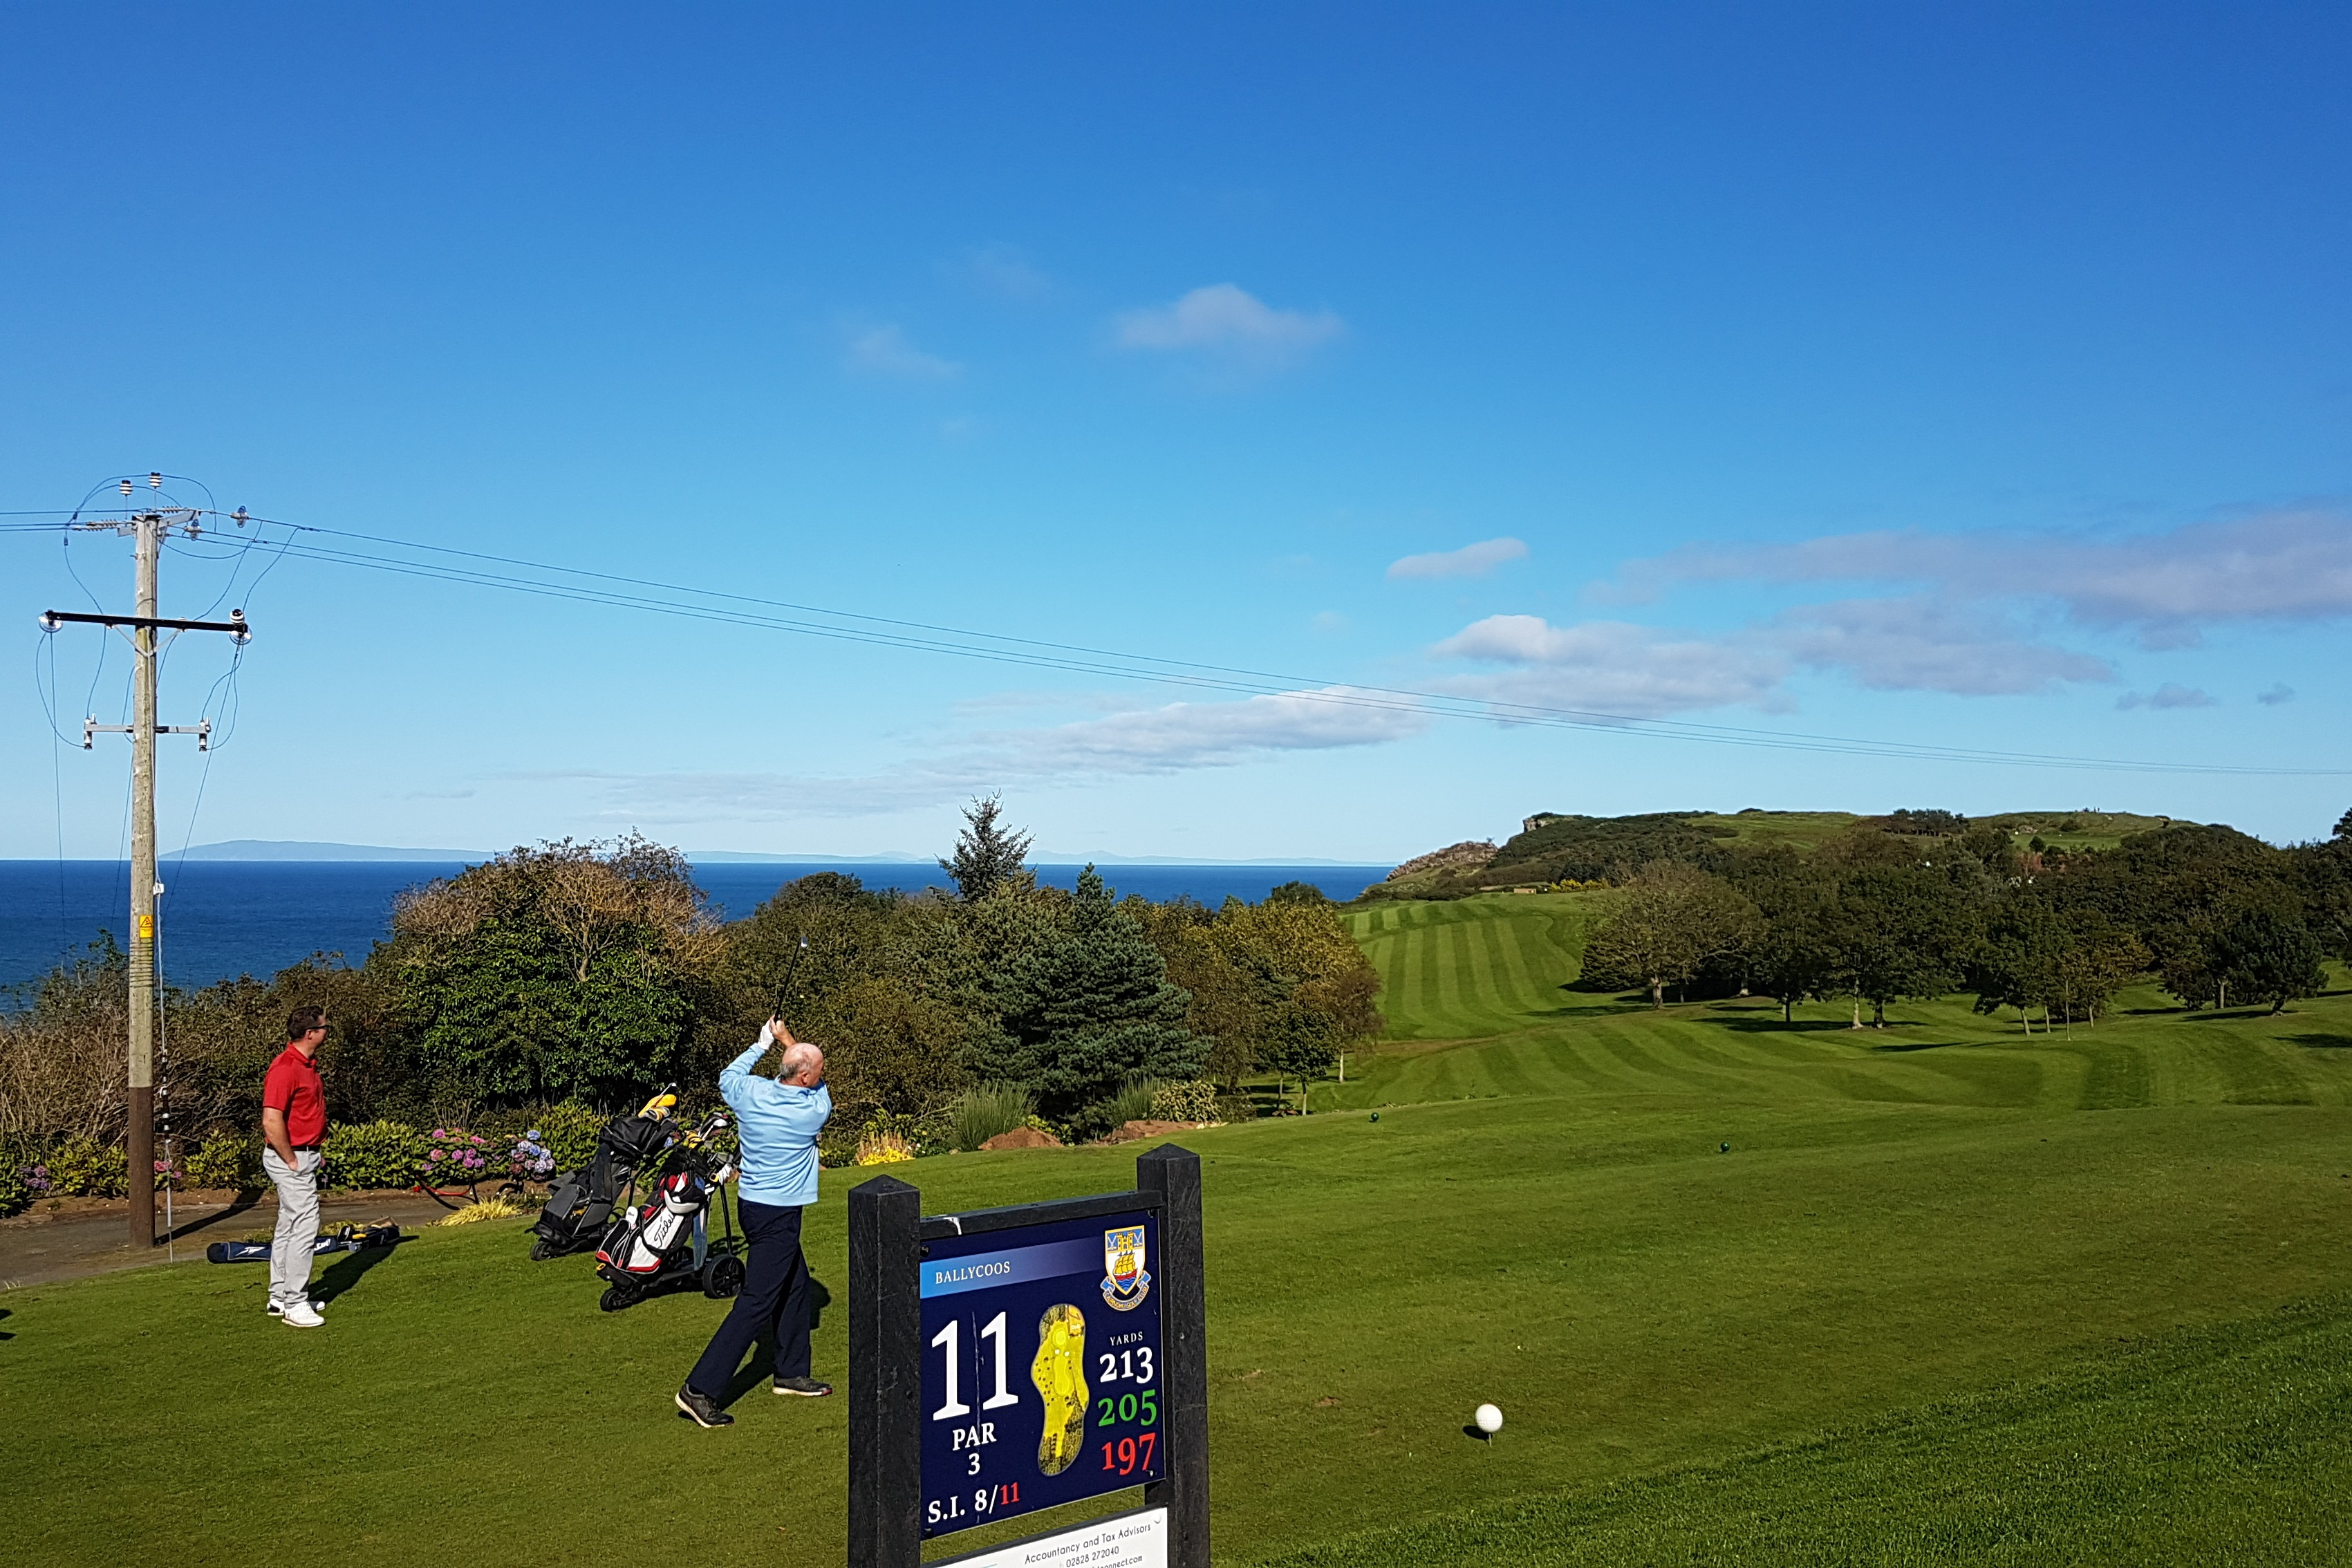 Teeing off on the 11th